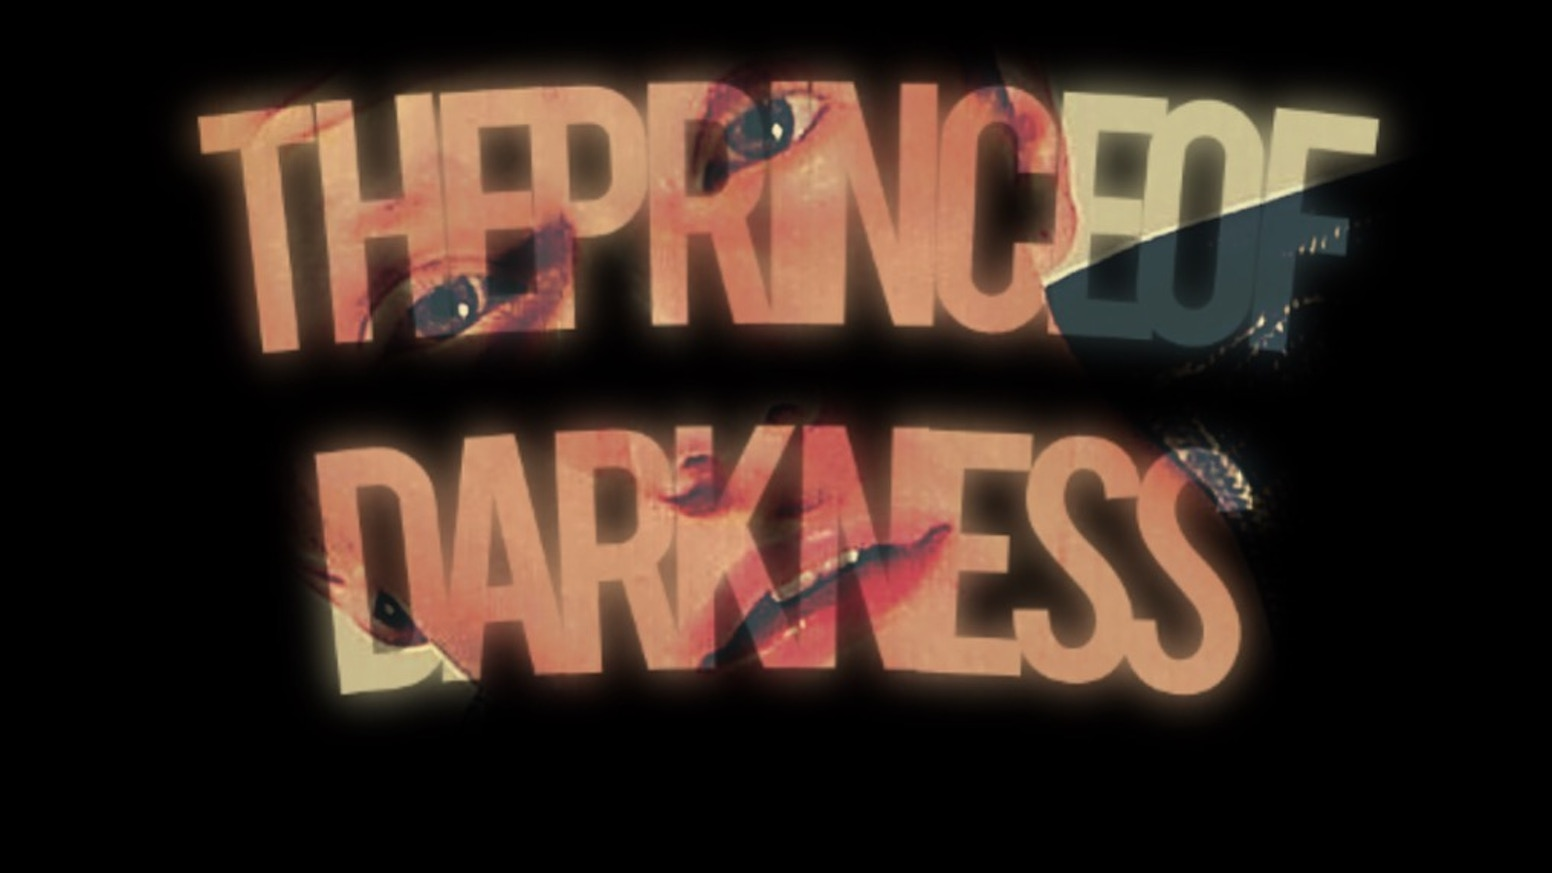 The Prince Of Darkness novel, a horror coming of age story set in the city of angels array with all kinds of colorful monsters.